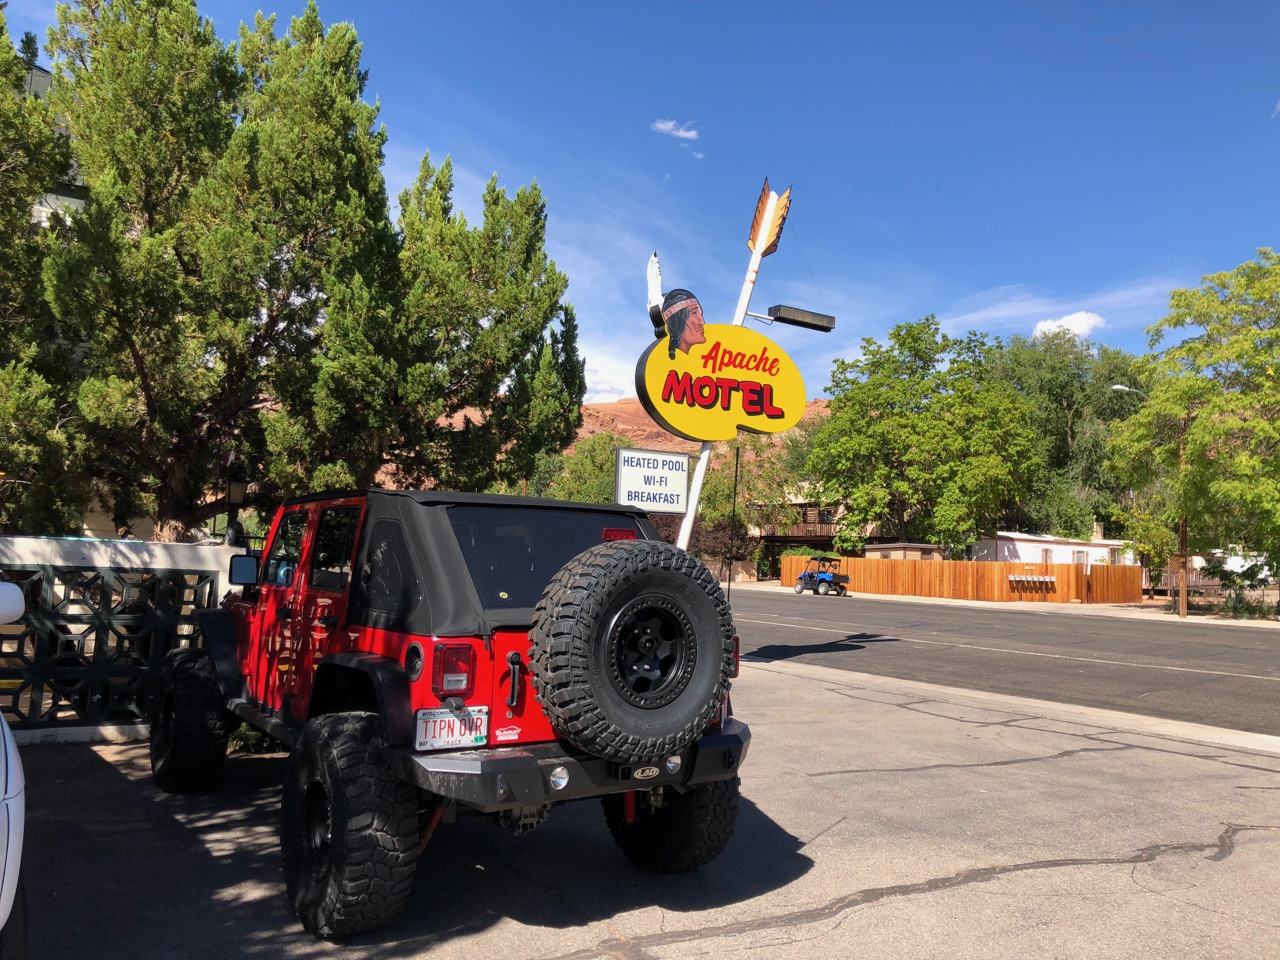 moab apache motel sign